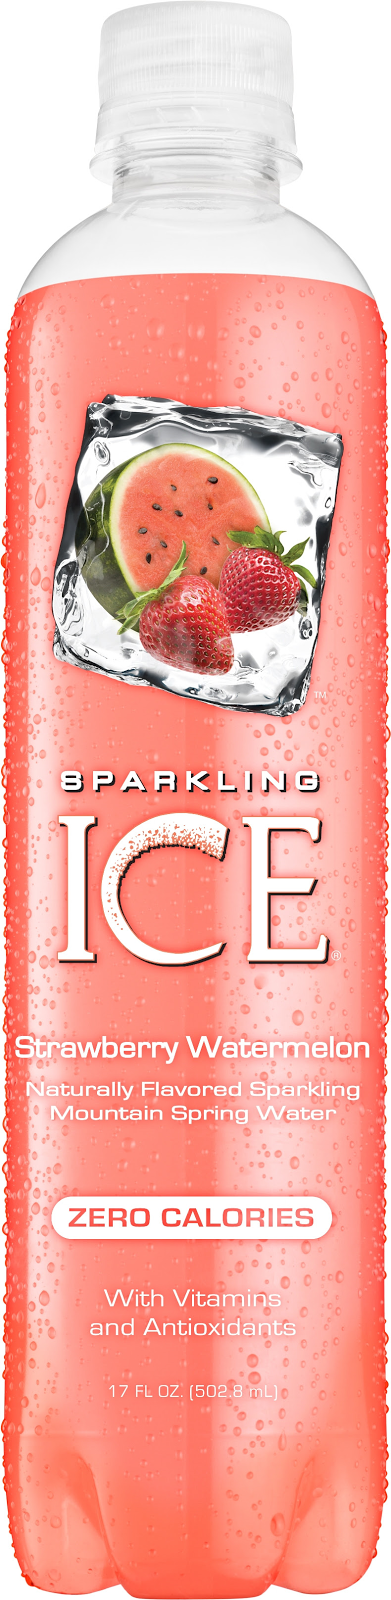 Sparkling ICE Launches 2 New Bold Flavors